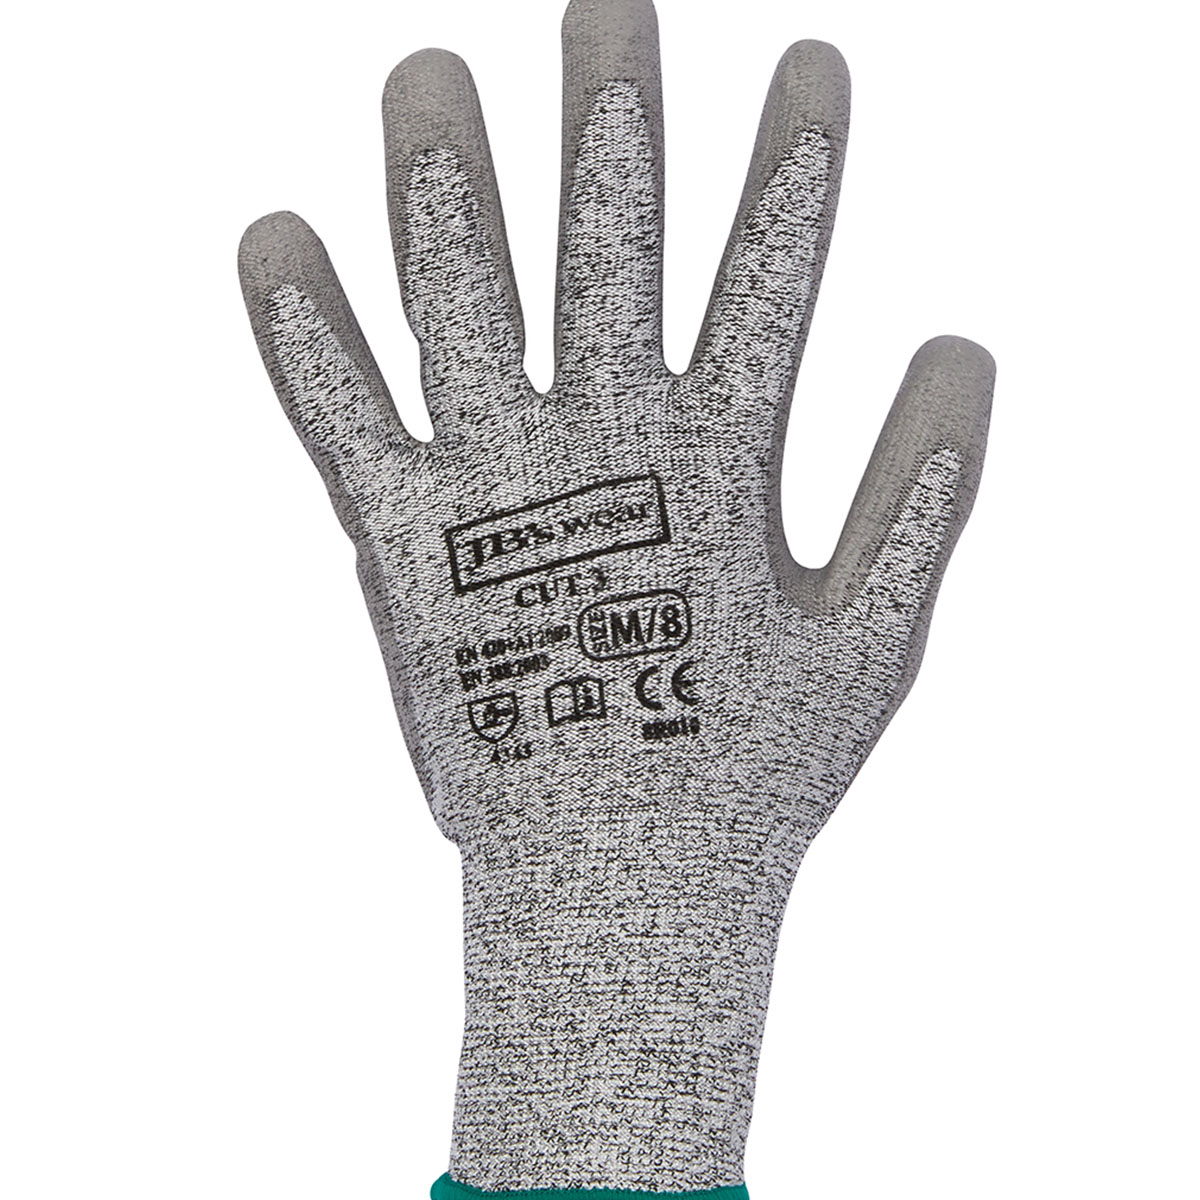 Cut 3 Glove Grey-Grey